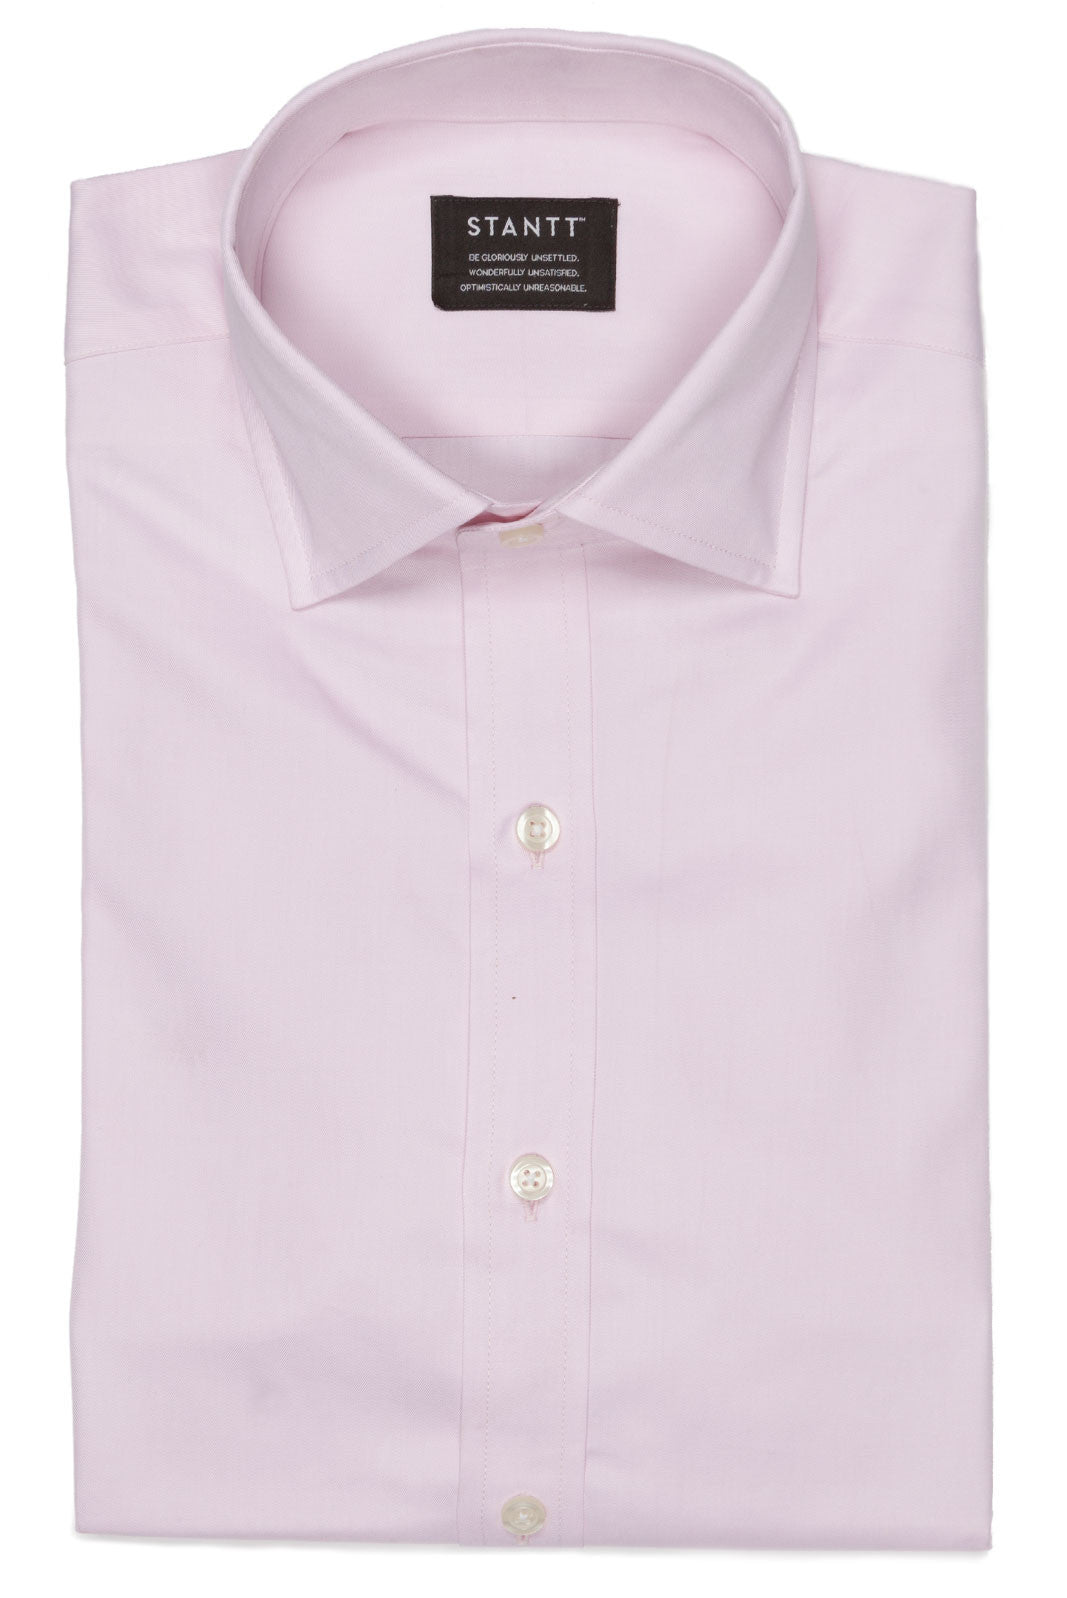 Light Pink: Semi-Spread Collar, French Cuff